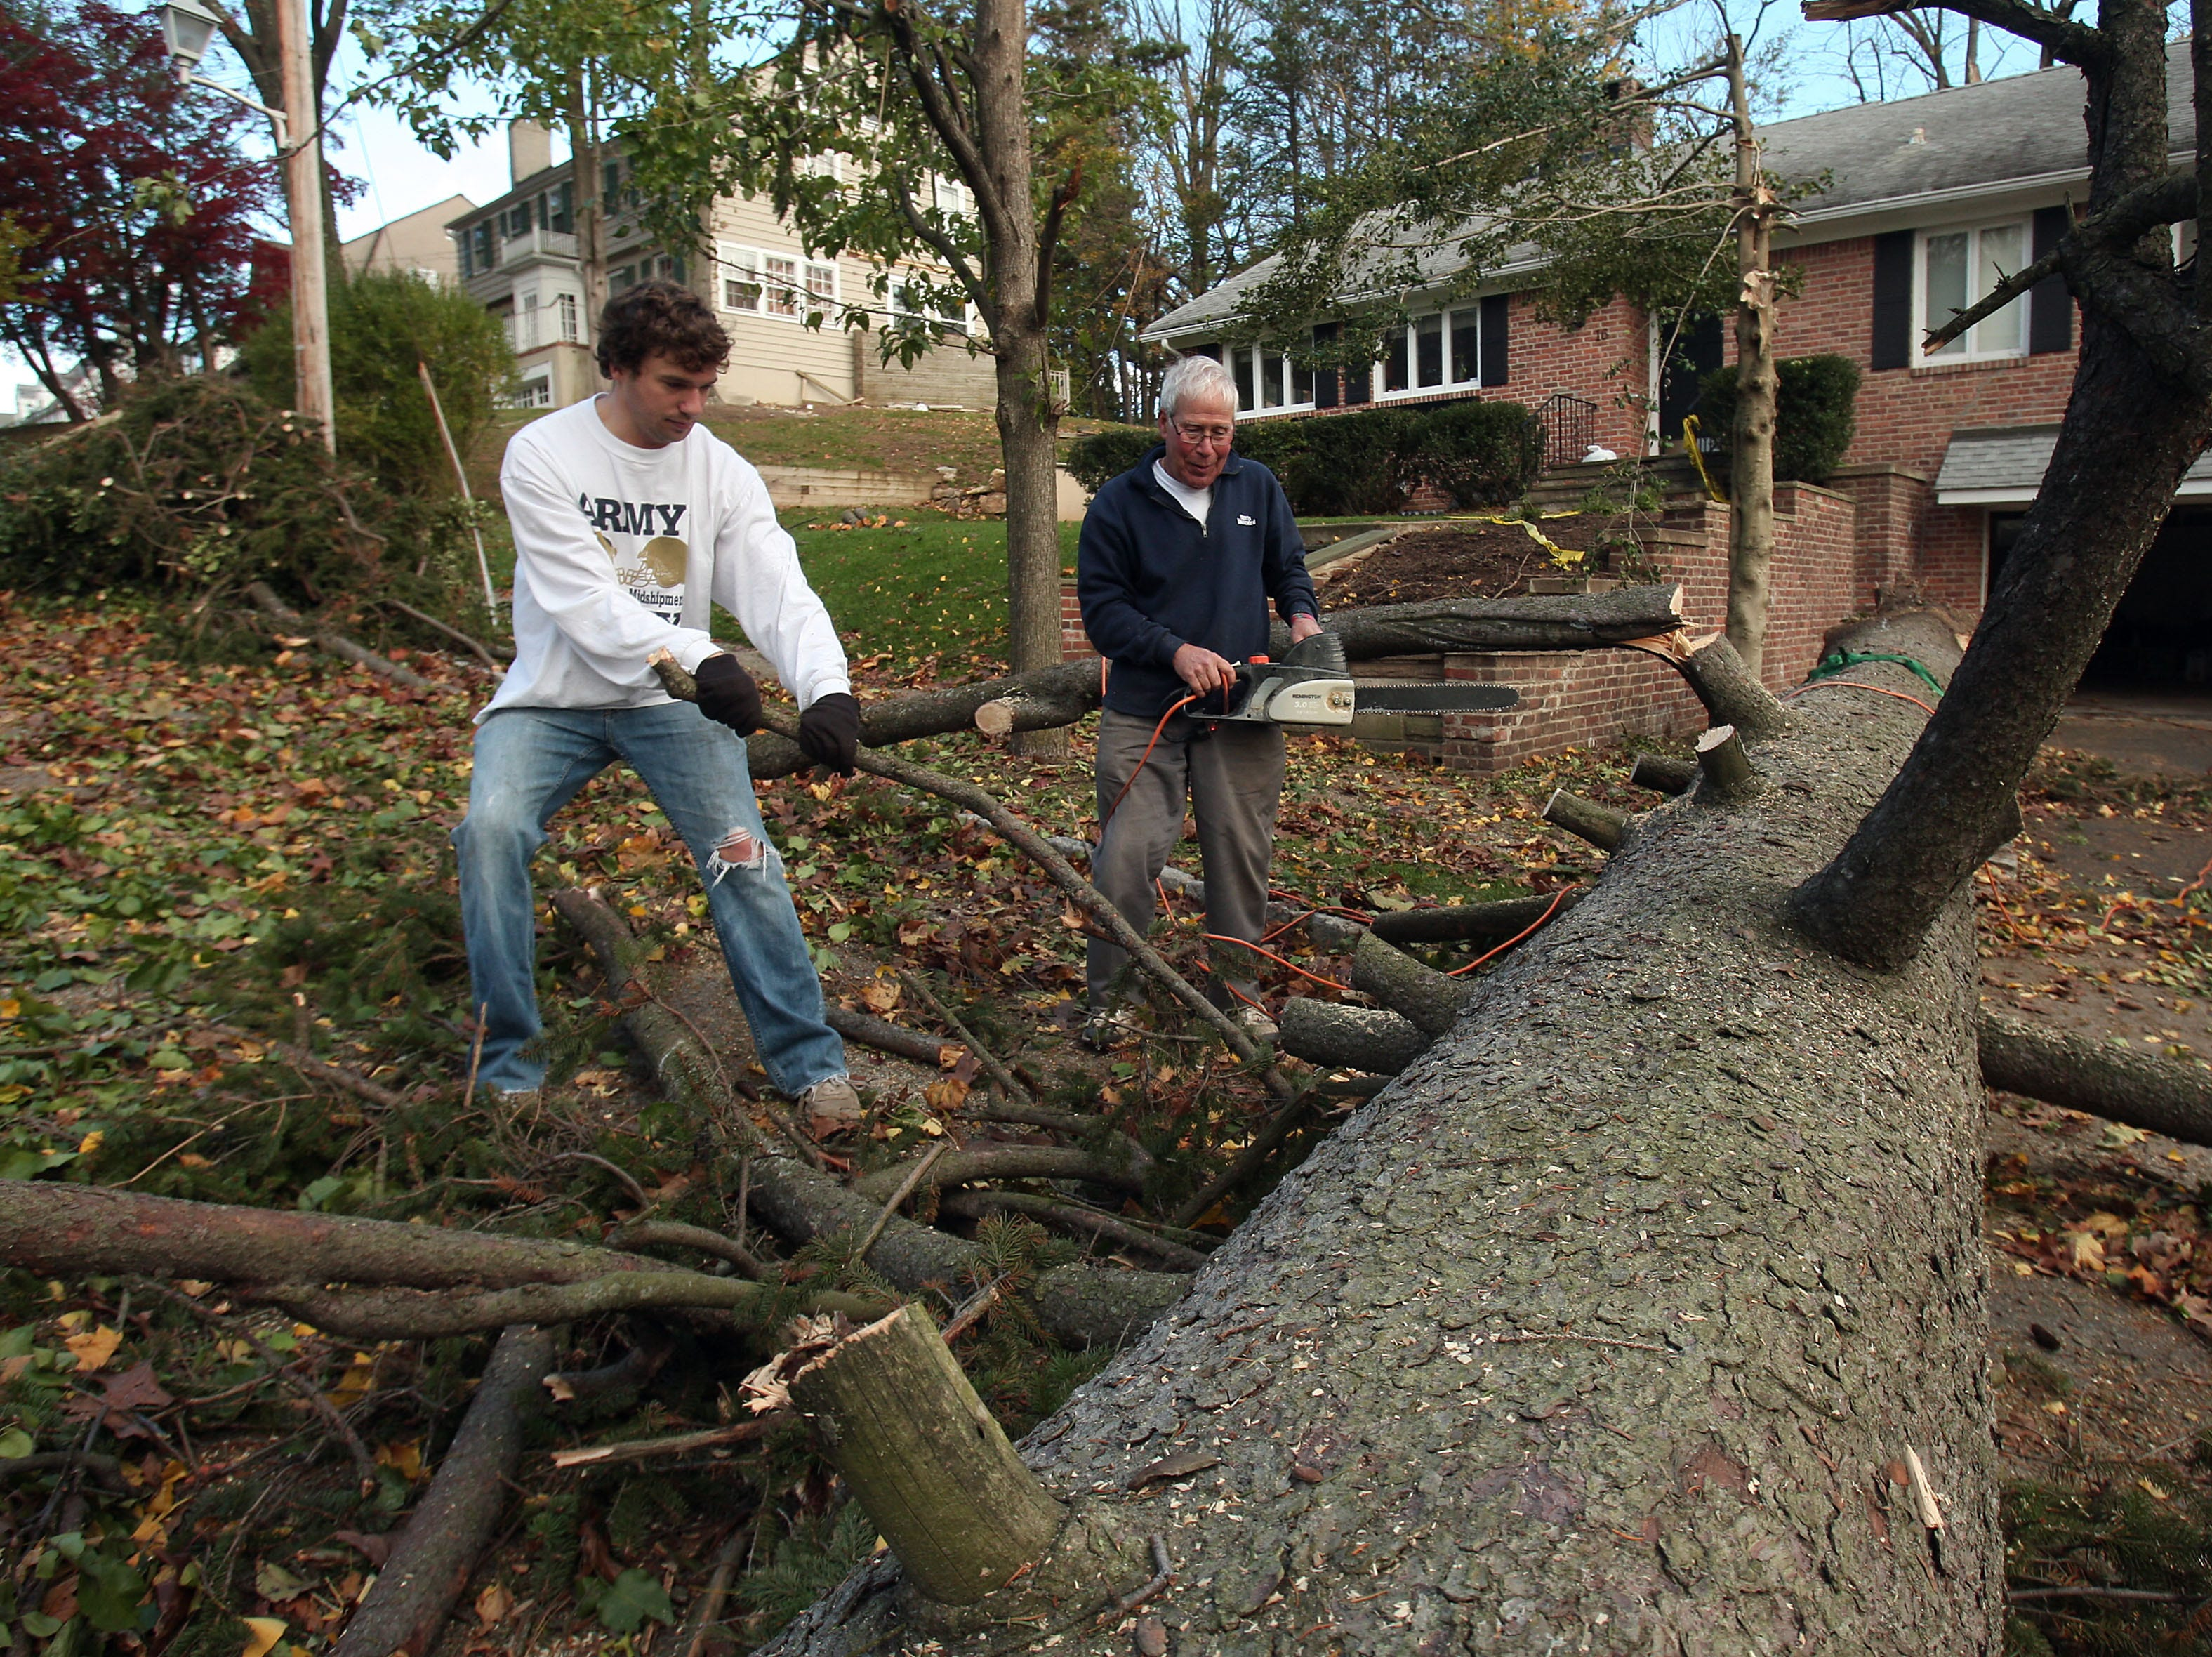 Morristown, N.J.- November 3, 2012--Carl Harter, l, and his fatherJohn of Chatham, NJ help to clear a giant tree that fell from Carl's front yard across Tuxedo Lane in Morristown, NJ as local recovery continues in the aftermath of Hurricane Sandy.Bob Karp/Staff Photographer/DAILY RECORD